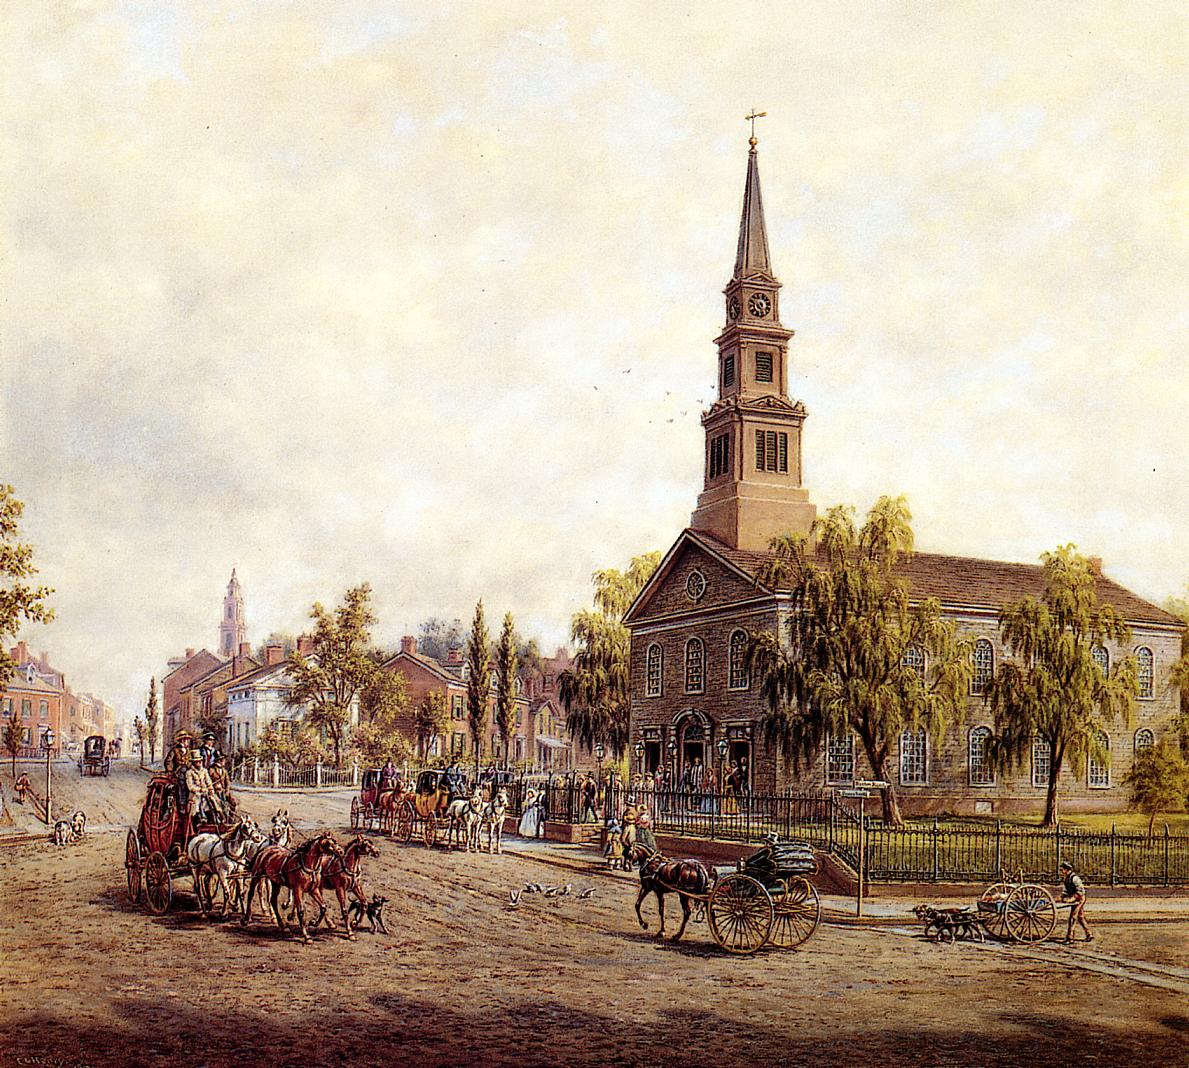 St. Mark's, early 1840s, by Lamson (image from Ephemeral New York)